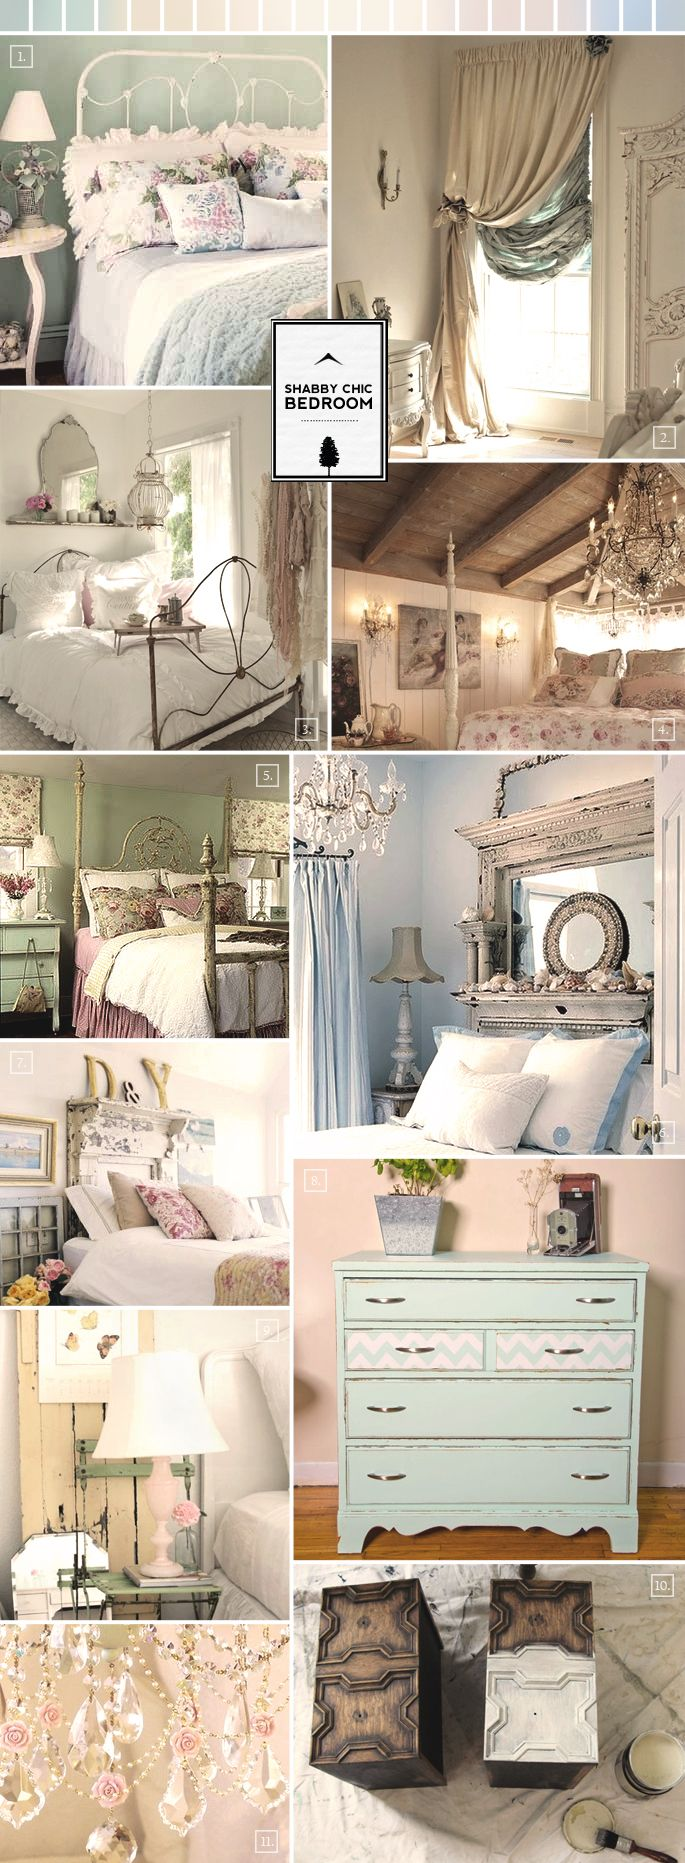 shabby chic bedroom ideas and decor inspiration - Shabby Chic Decor Bedroom